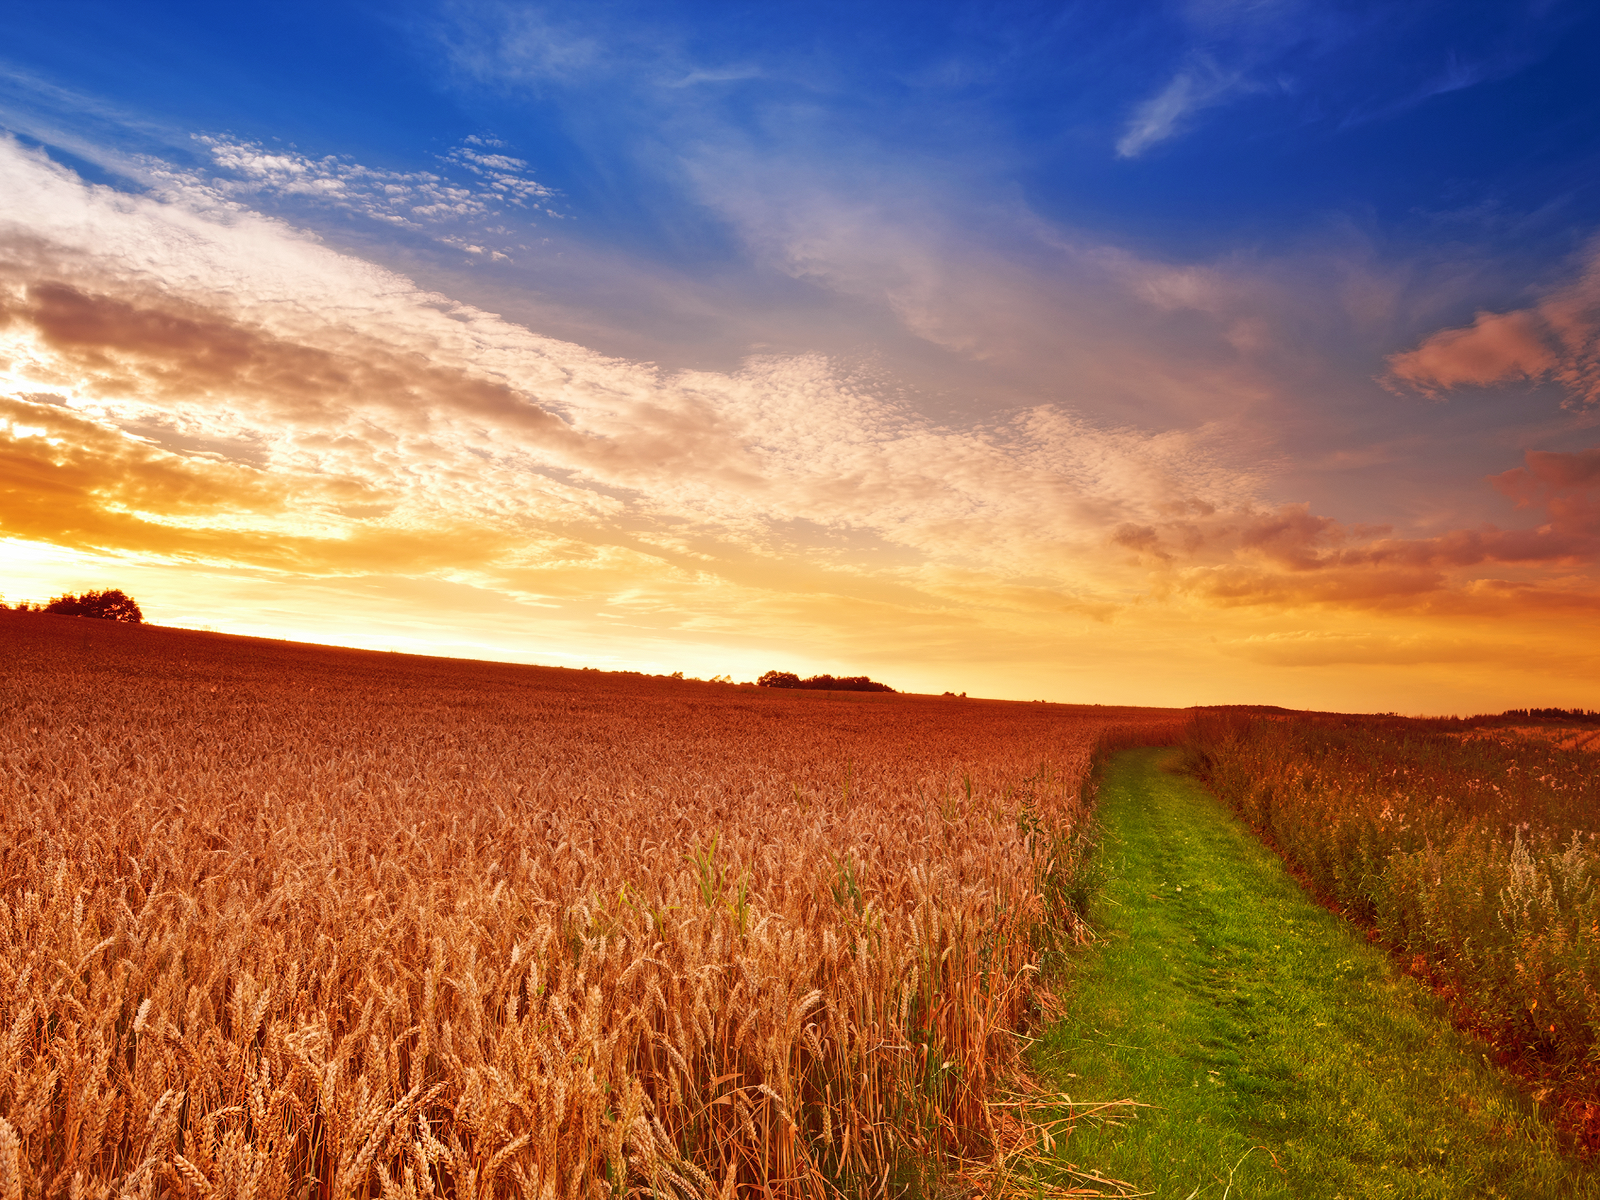 Farm Country Field wallpaper Conservatives Weave a Ragged History 1600x1200